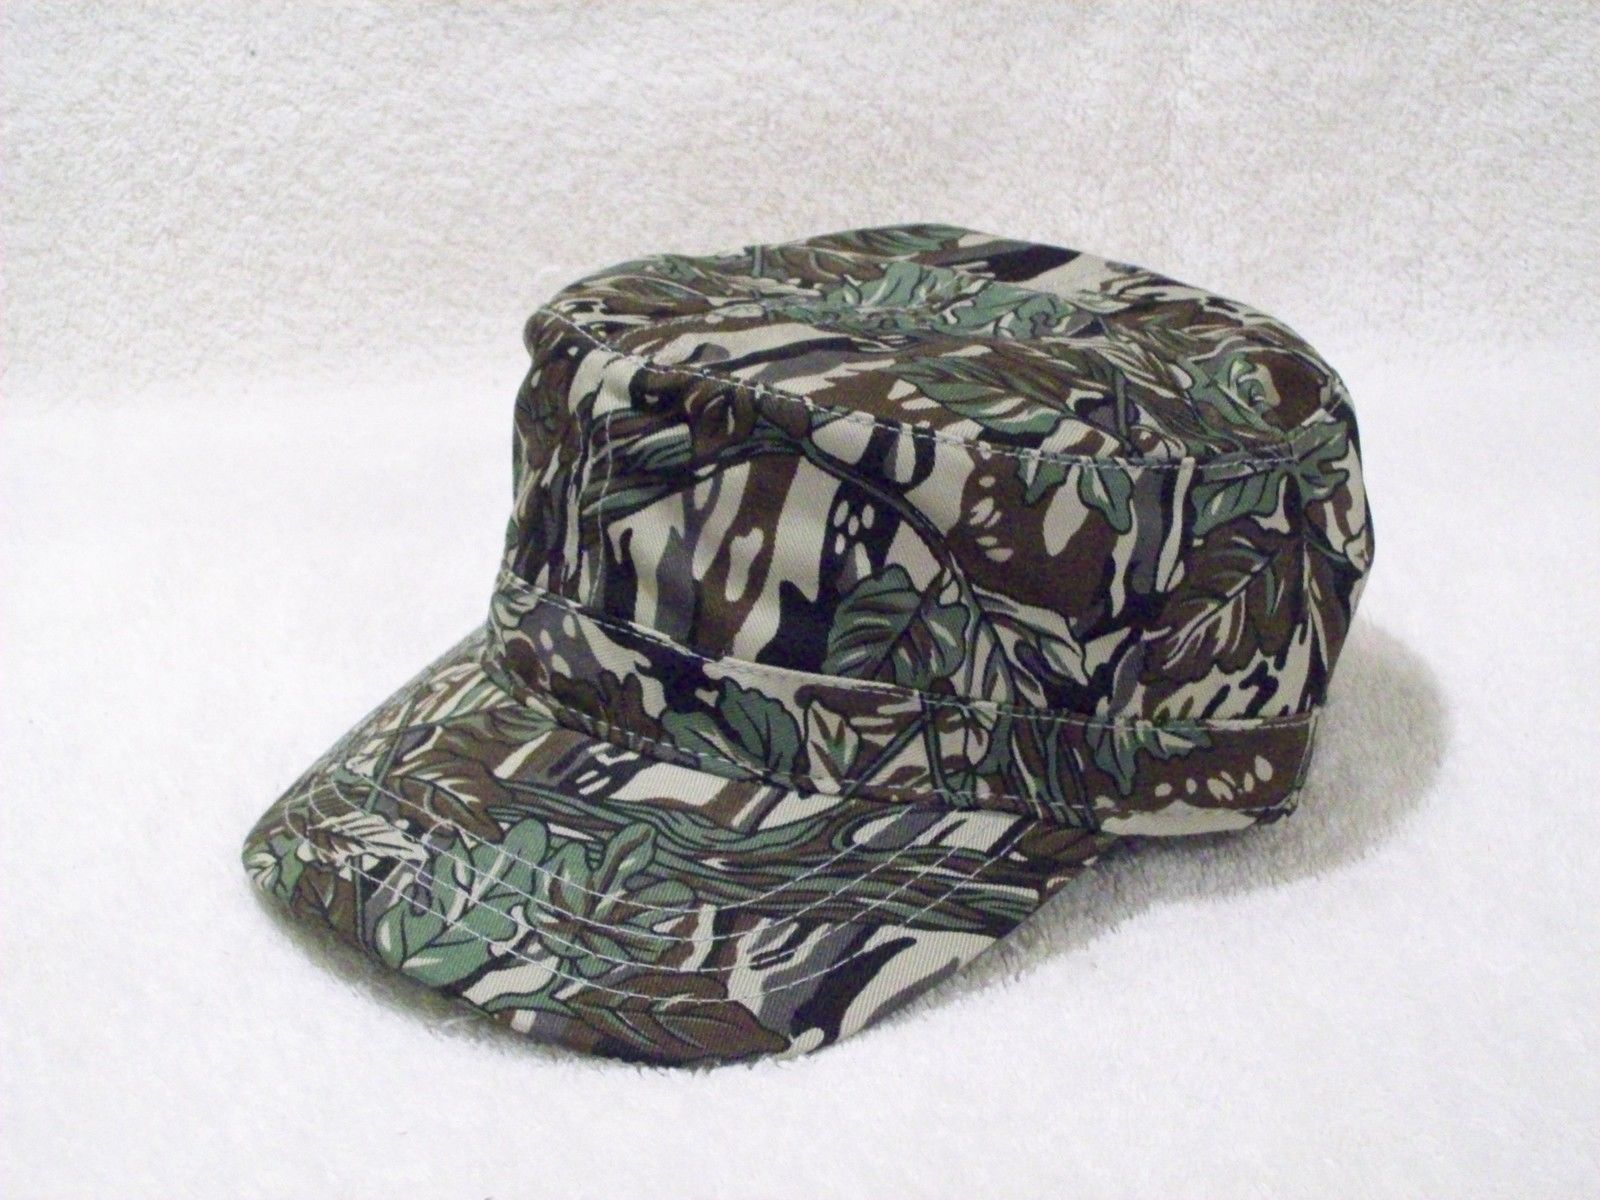 6b36f1a7921 t2ec16hhjiqe9quhu0vfbqq v fto 60 57. t2ec16hhjiqe9quhu0vfbqq v fto 60 57.  Previous. NEW GRAY GREEN CAMOUFLAGE MILITARY STYLE CADET HAT PAINTER CAP ...